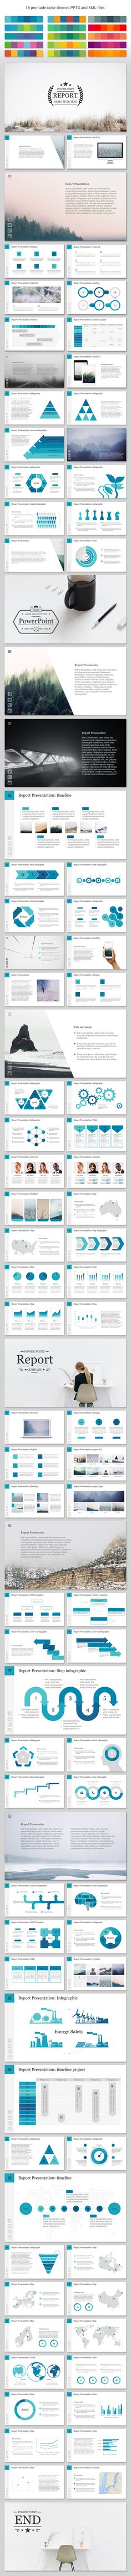 Report PowerPoint Template #design #slides Download: http://graphicriver.net/item/report-powerpoint/14343336?ref=ksioks